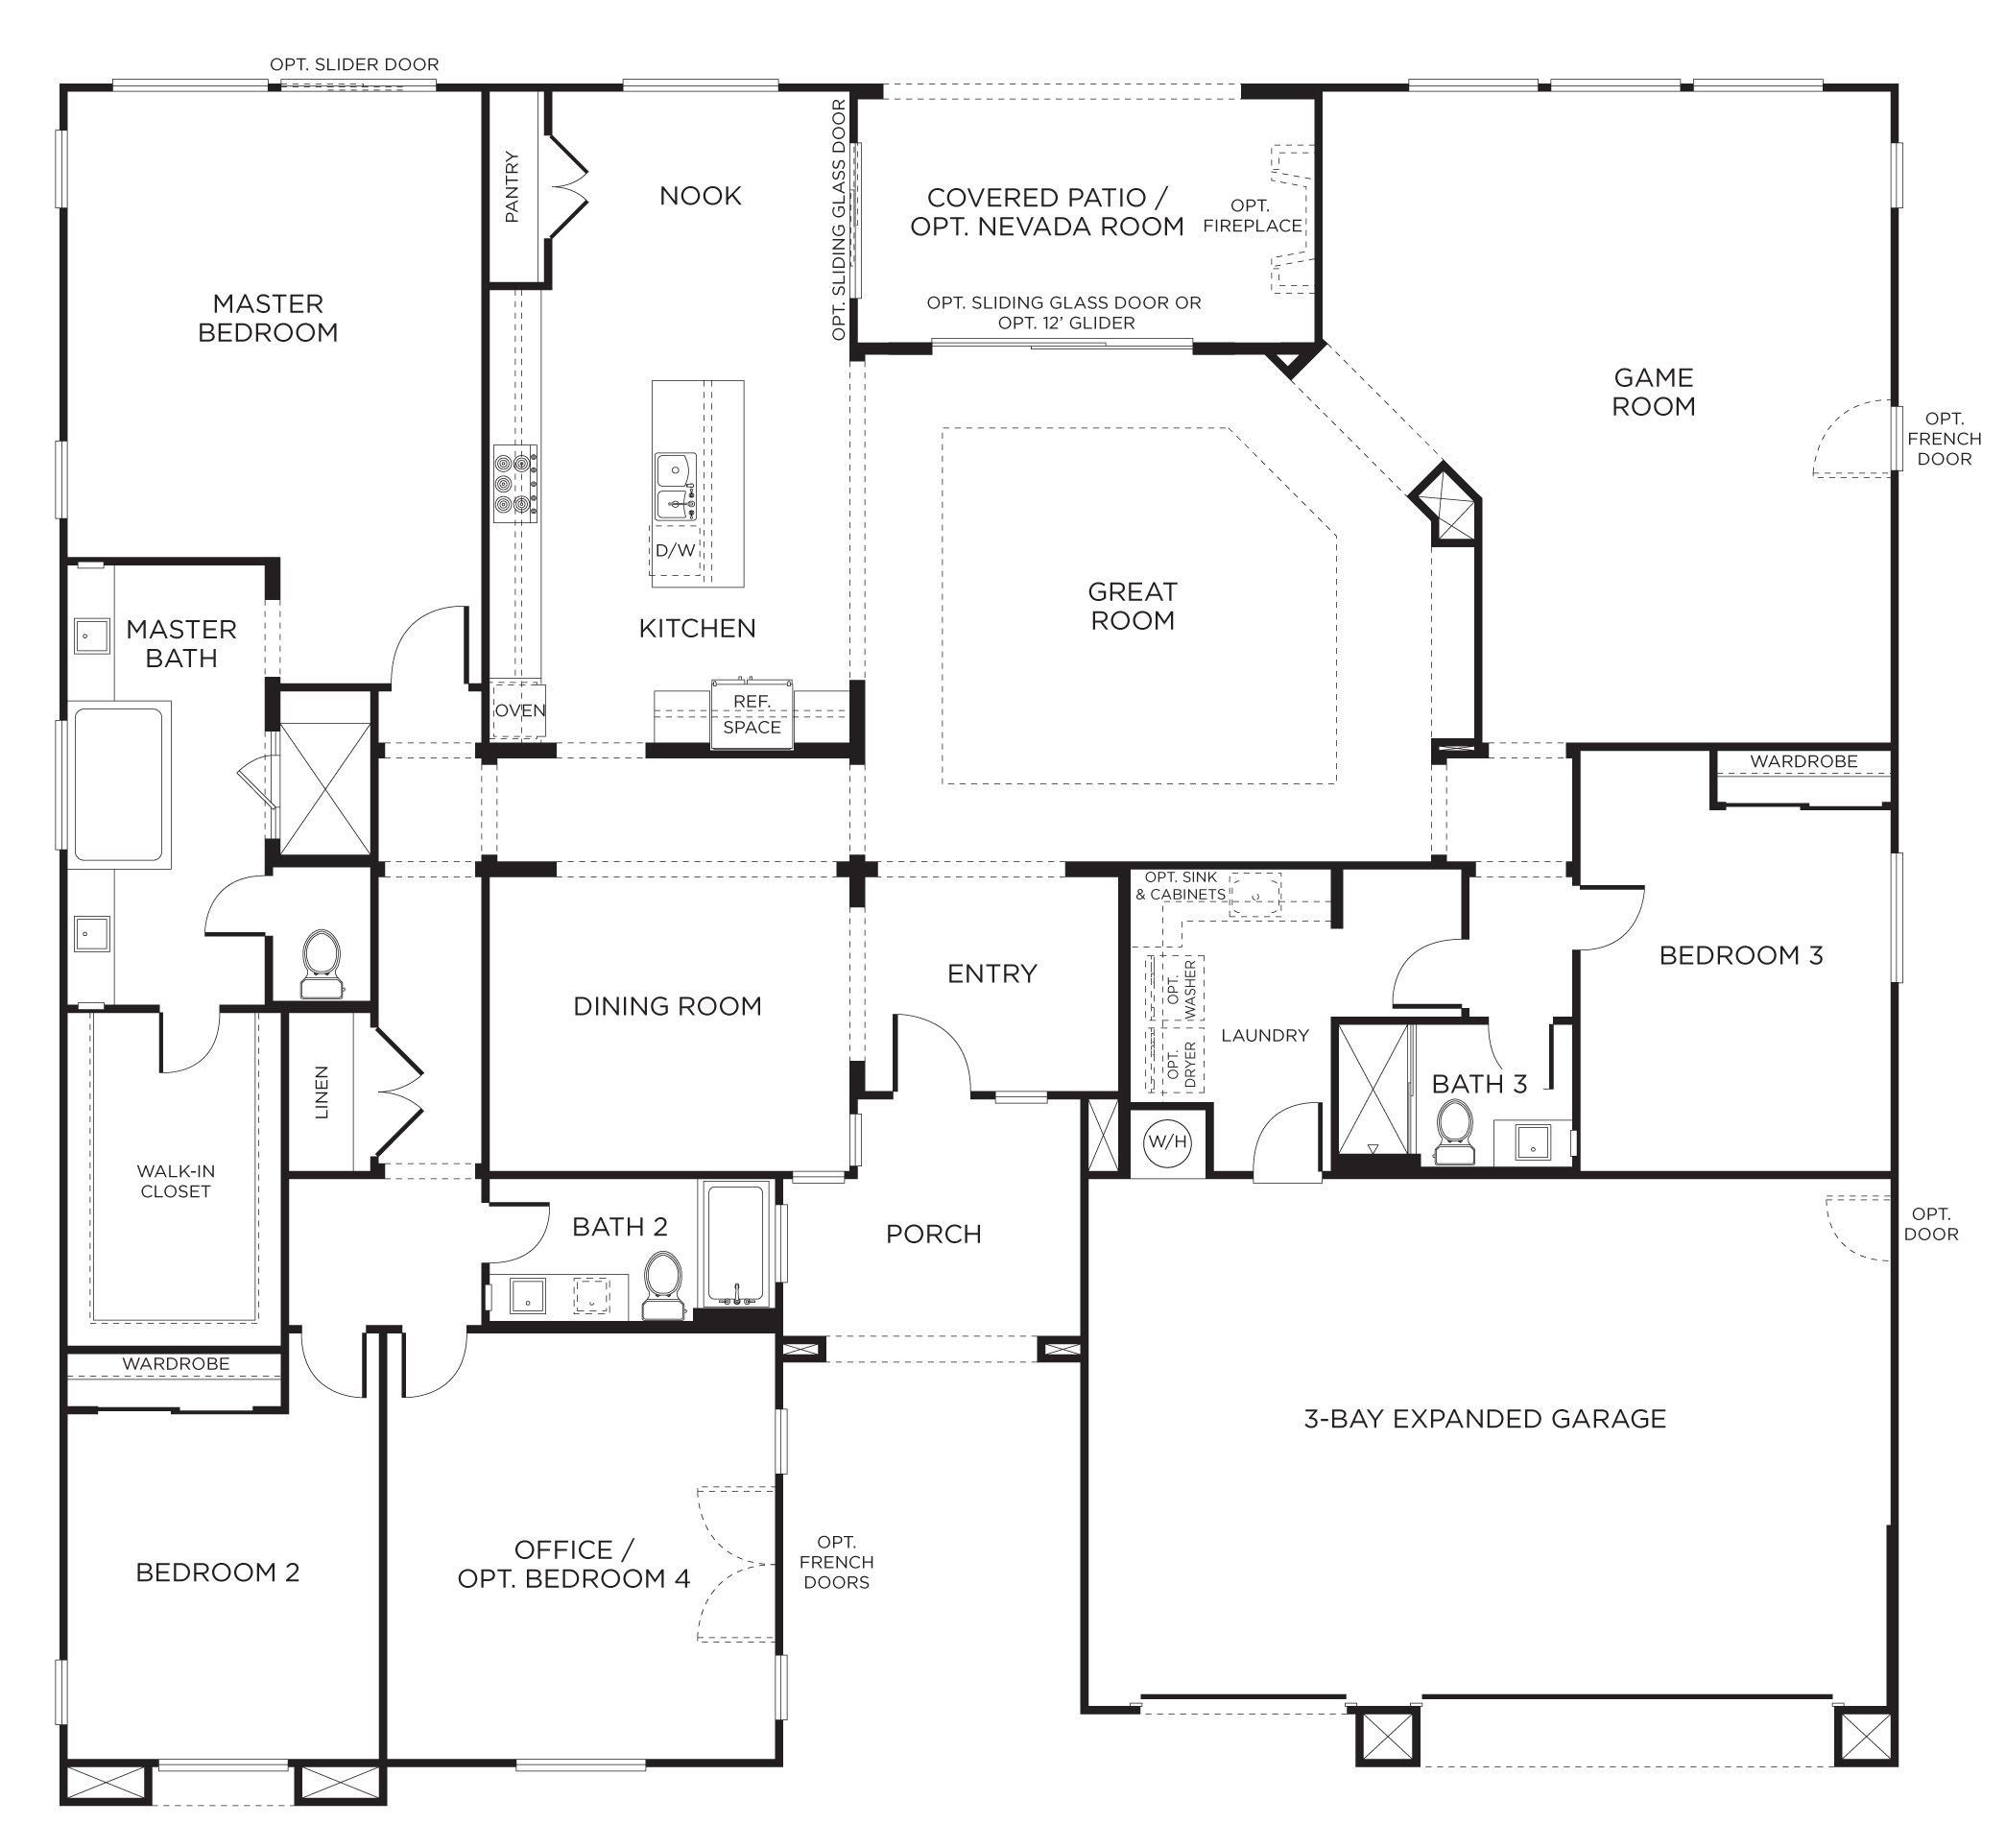 One Story Luxury Home Designs: Floorplan 2: 3-4 Bedrooms, 3 Bathrooms, 3400+ Square Feet